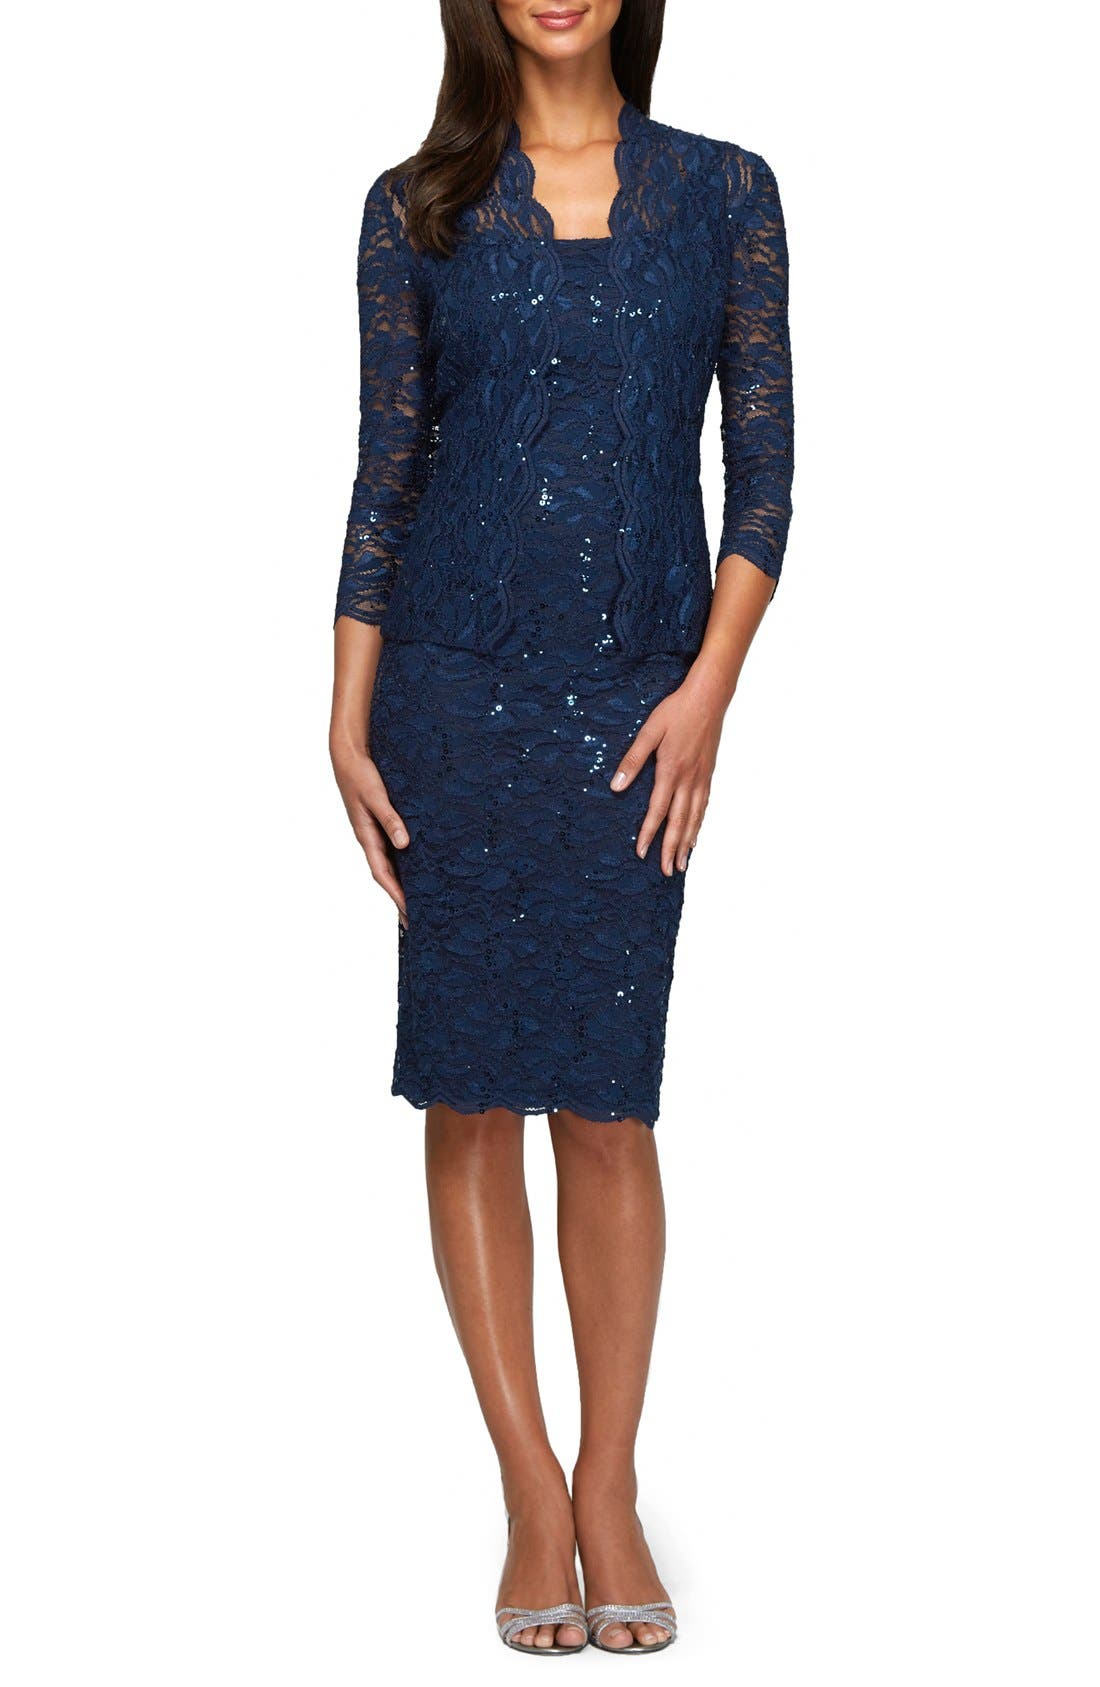 Main Image - Alex Evenings Lace Dress & Jacket (Regular & Petite)